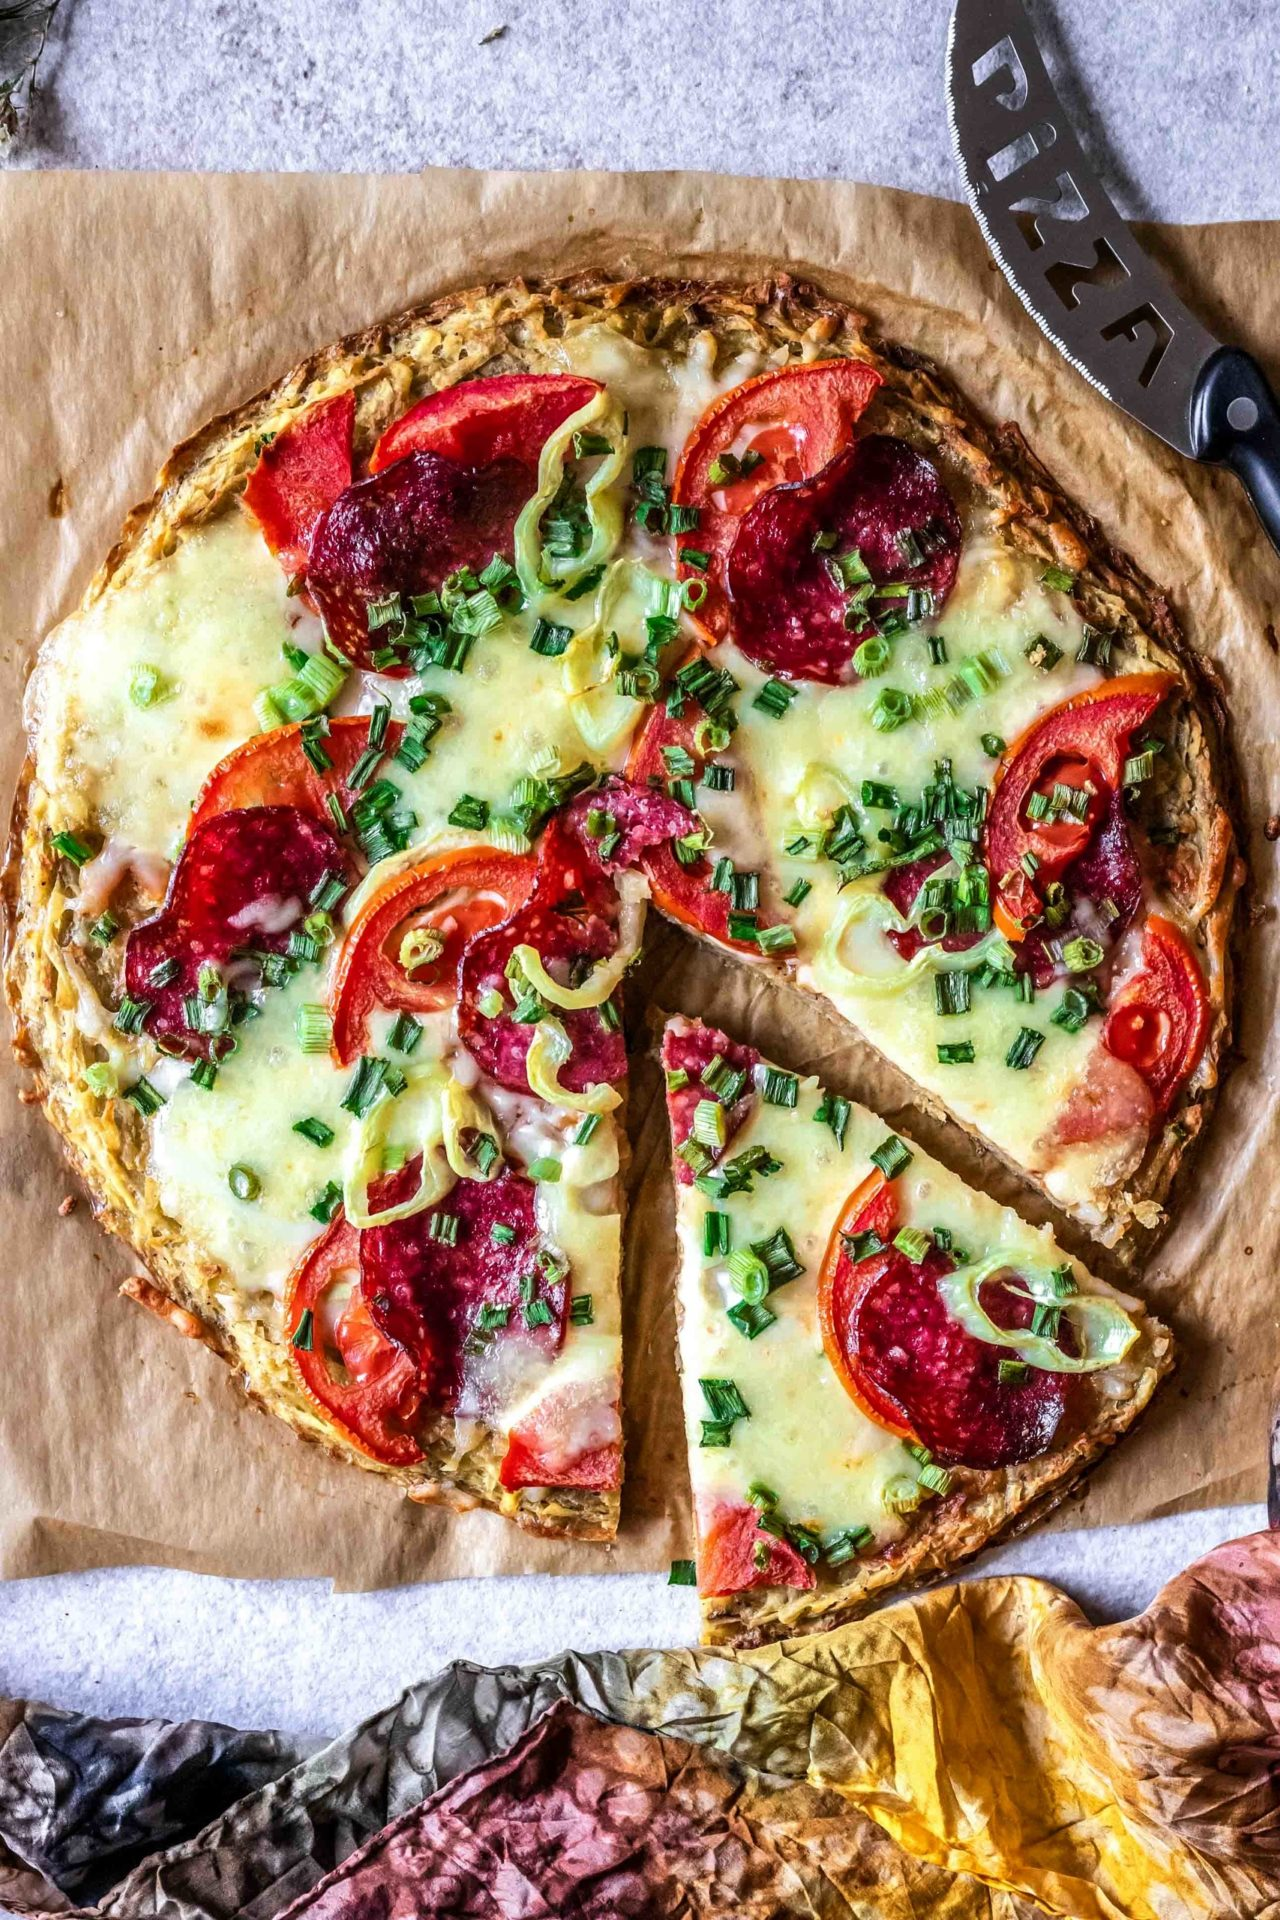 This potato crust pizza is crispy on the edges and tender in the middle, savory, healthy and so delicious! Plus it is low FODMAP, gluten, grain, and dairy-free!